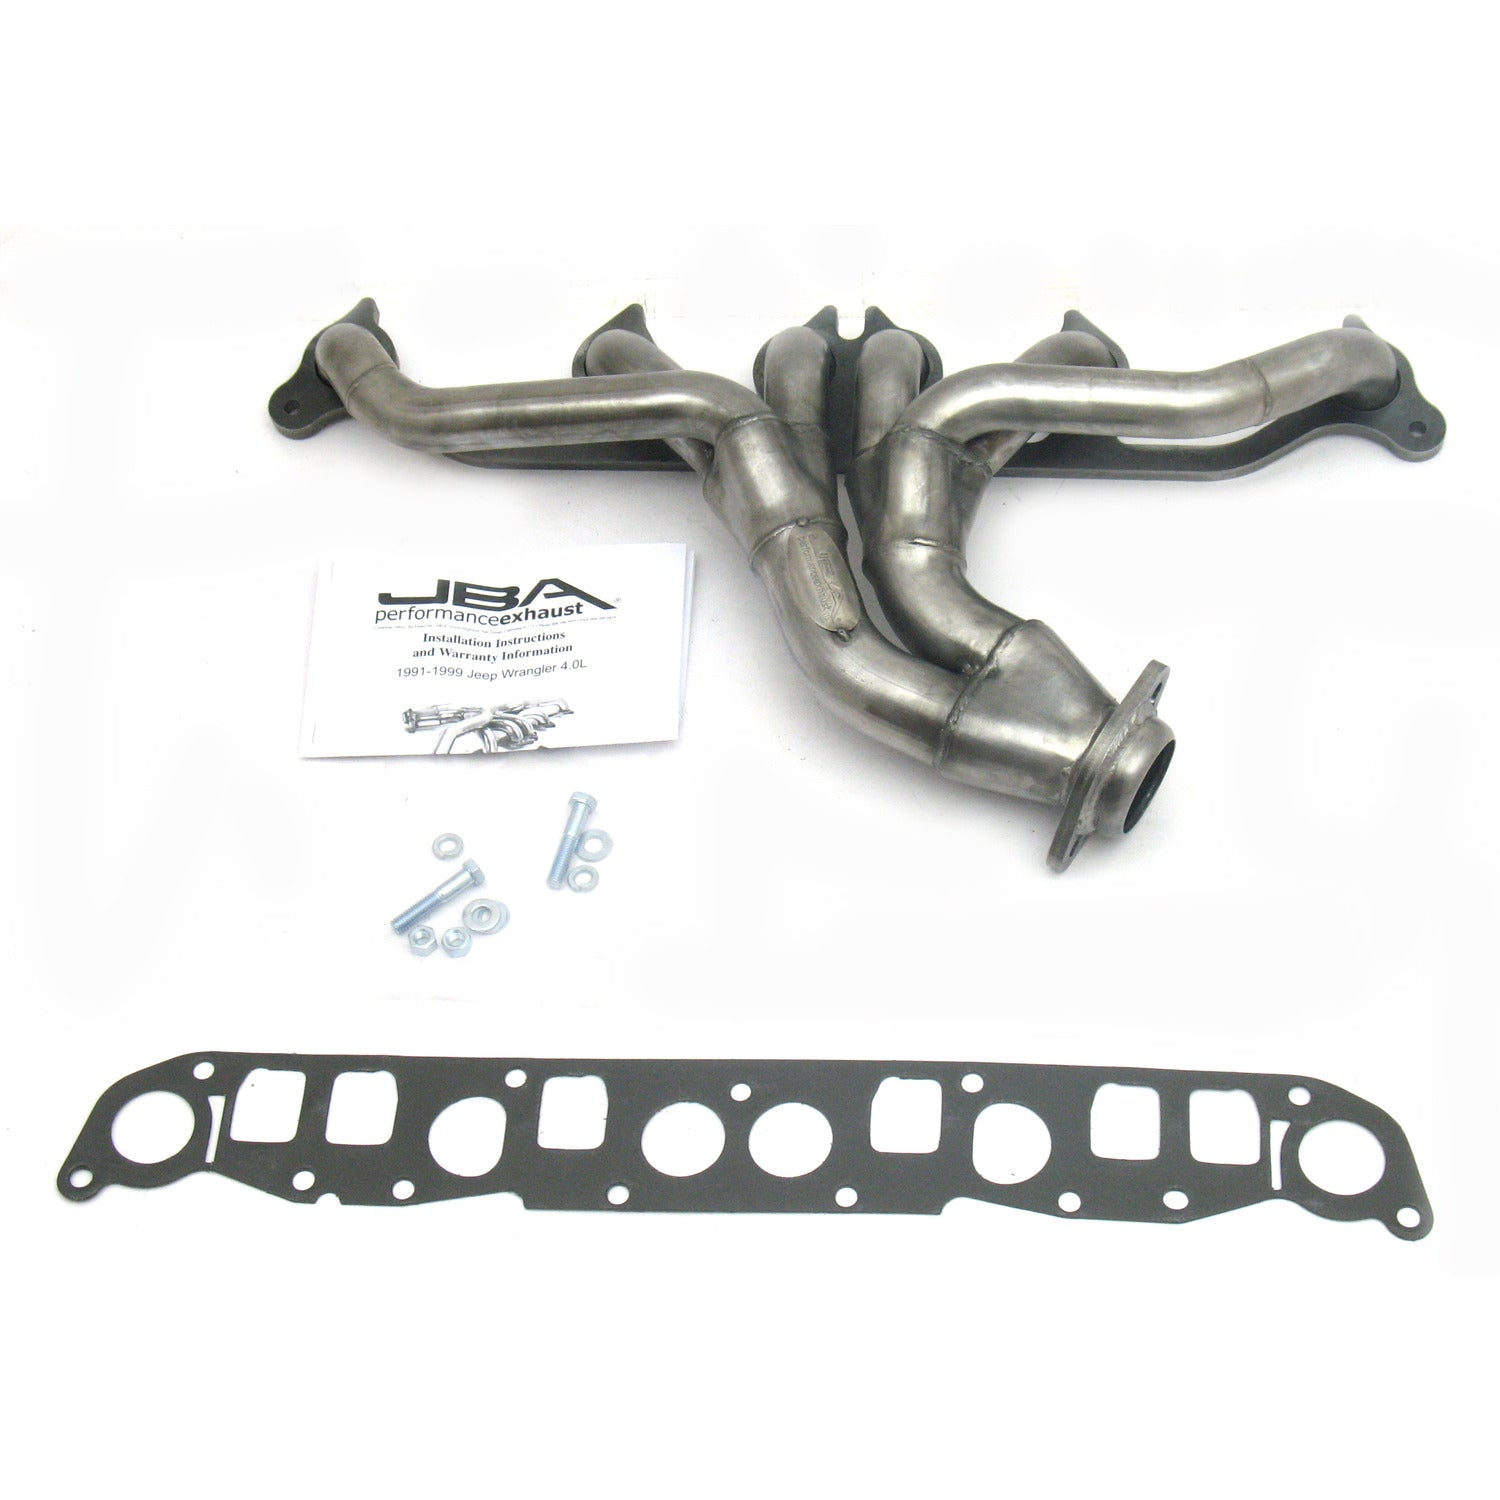 "JBA Performance Exhaust 1526S 1 1/2"" Header Shorty Stainless Steel 91-99 Jeep Wrangler/Cherokee 4.0L"